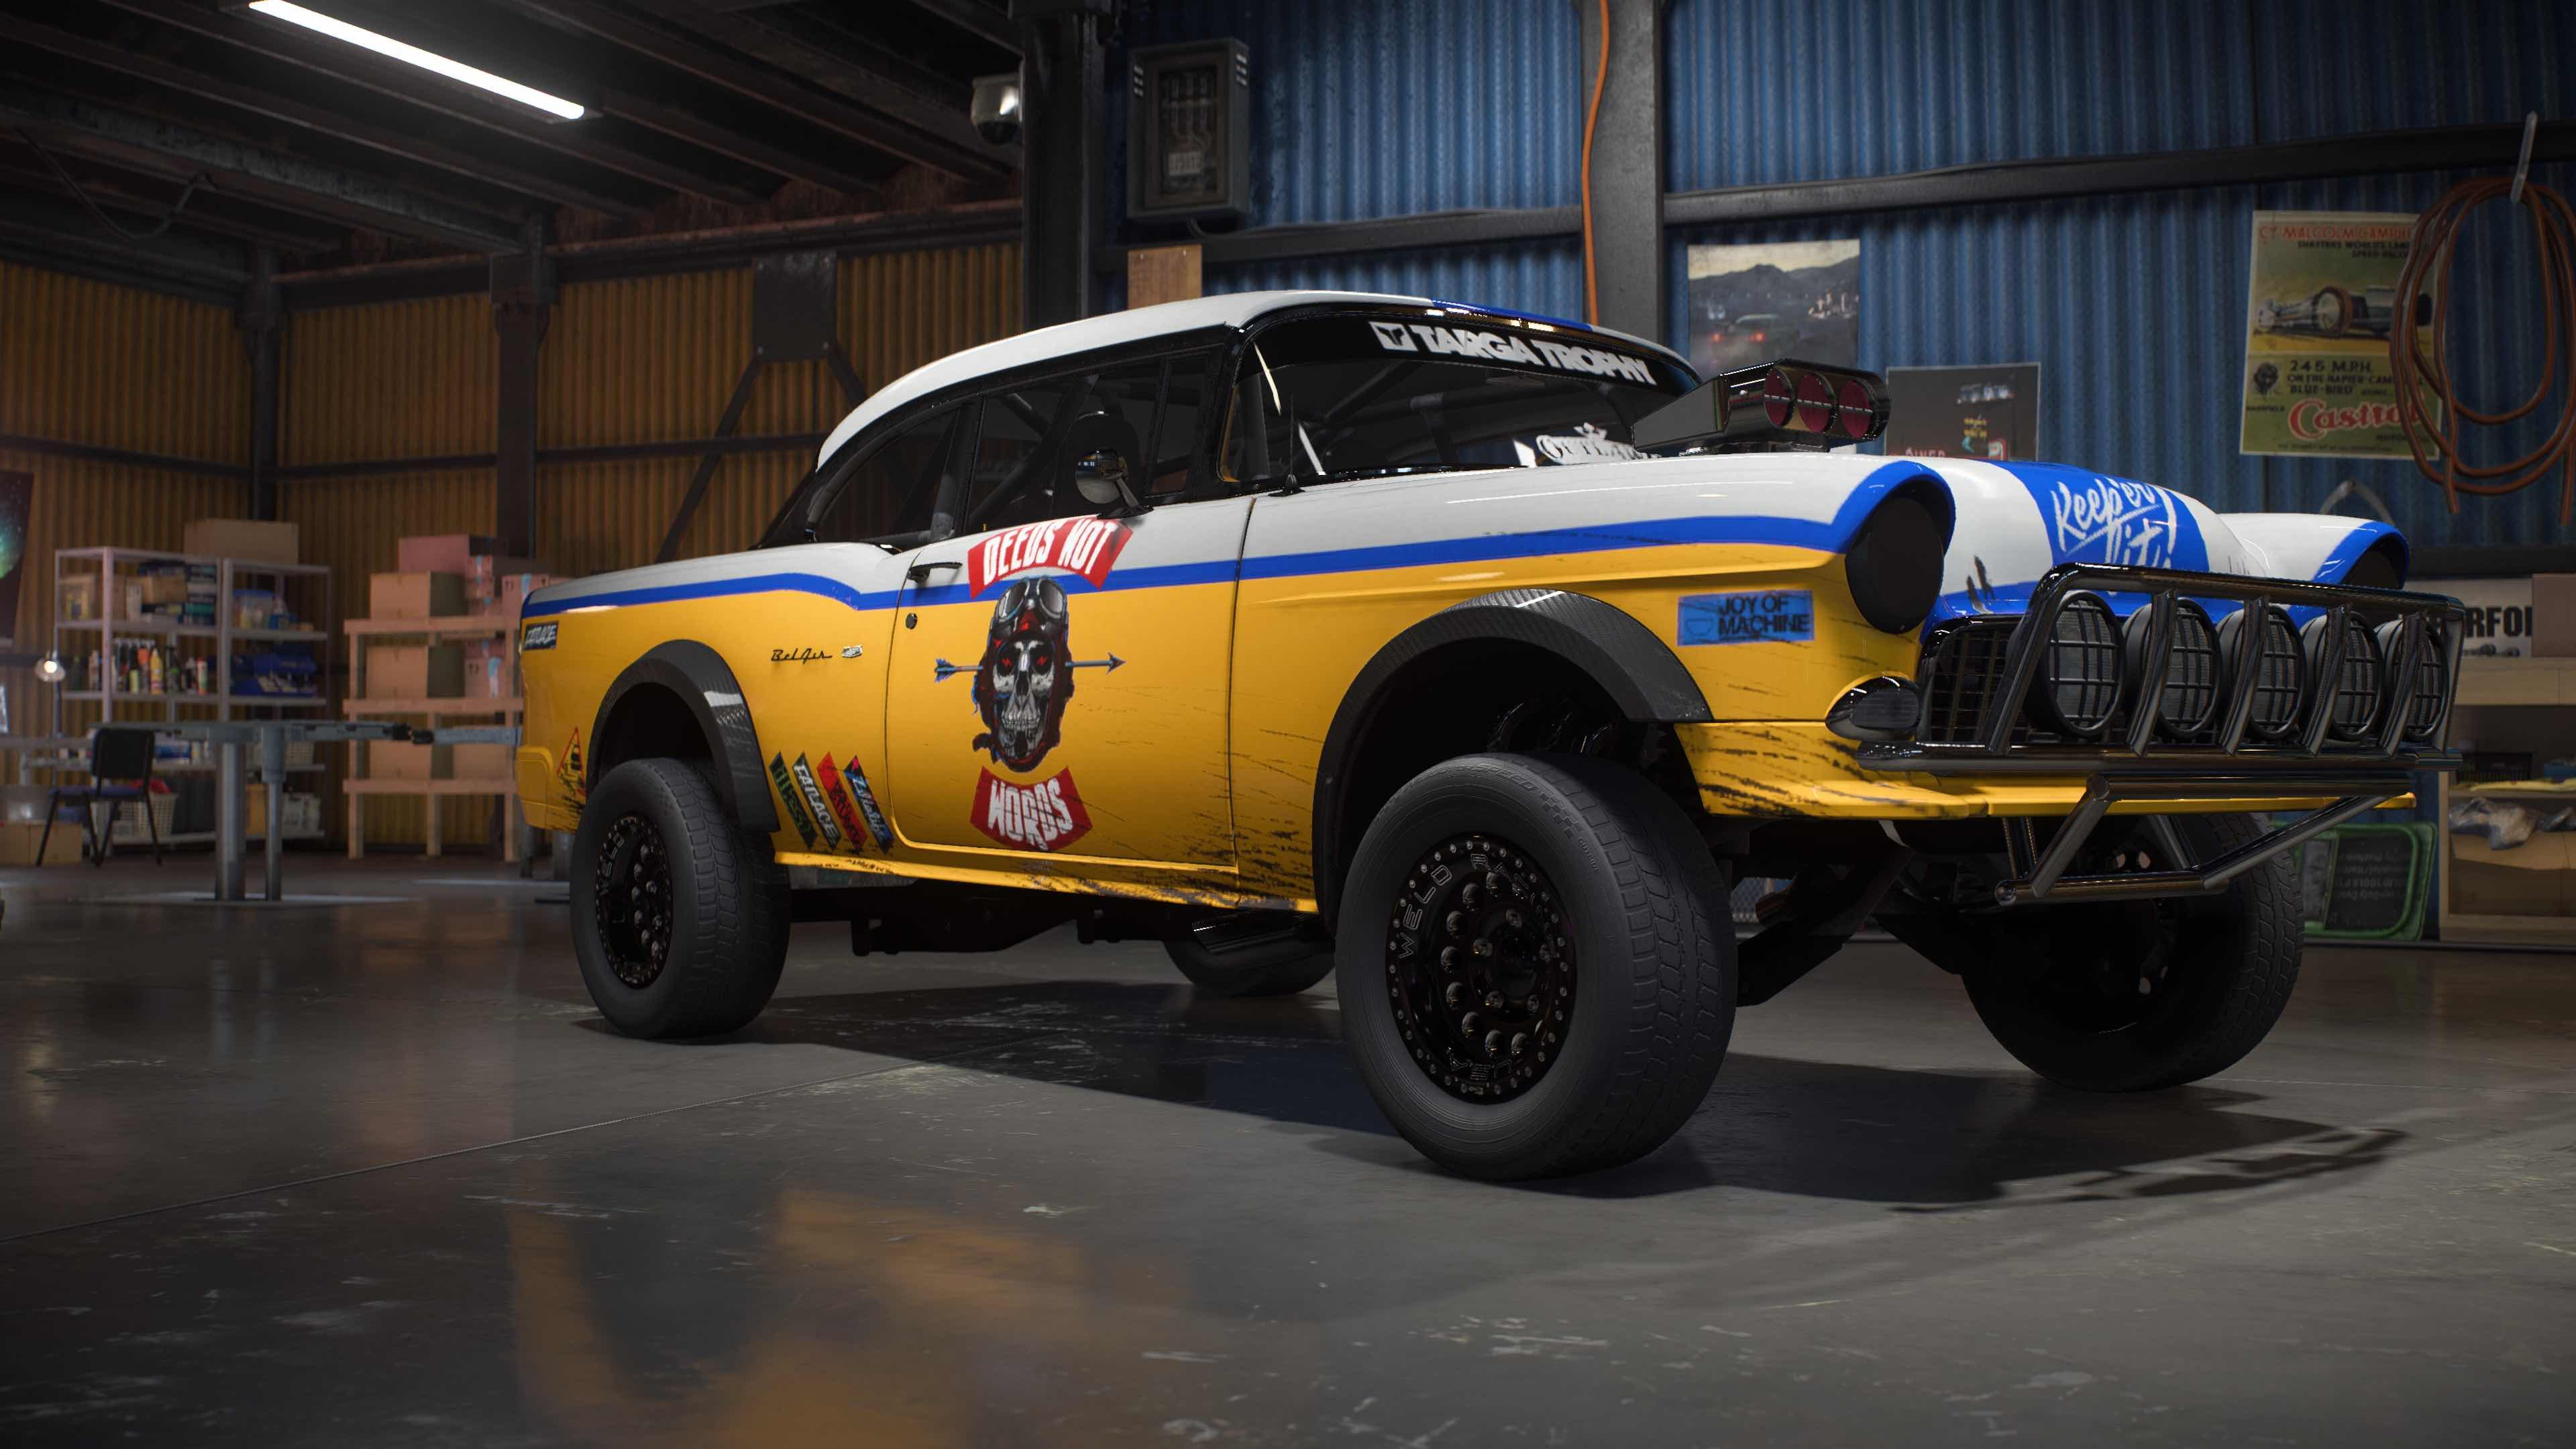 nfsp-botw-chevy-bel-air-07-2x.jpg.adapt.crop16x9.145570w (1).jpg - Need for Speed Payback